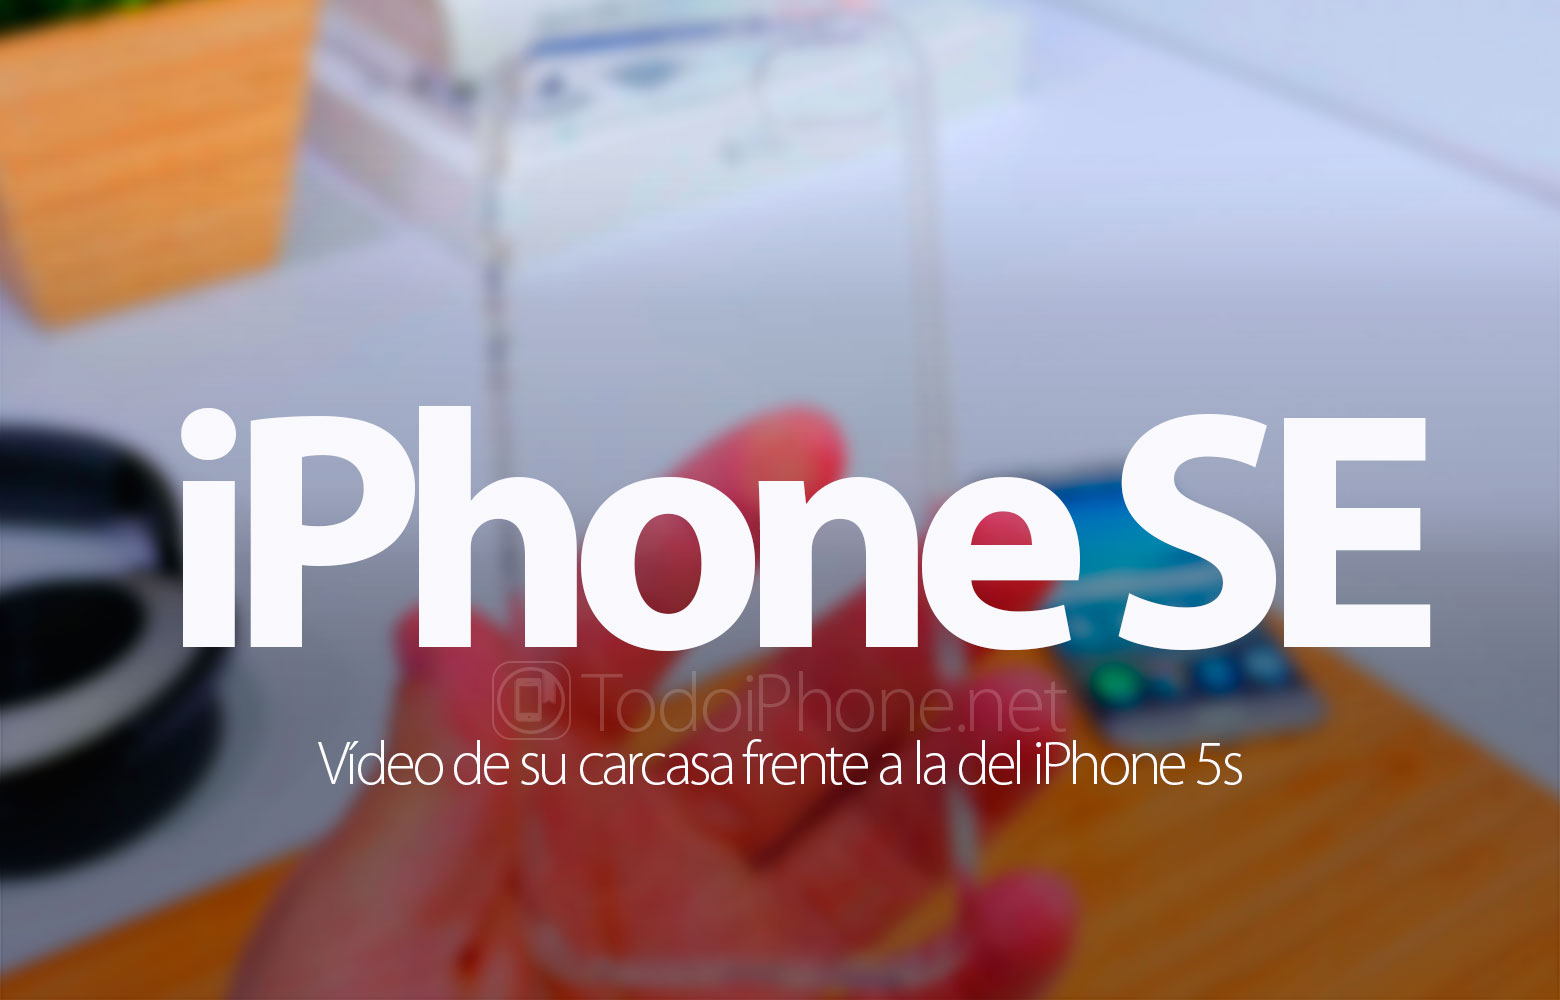 iphone-se-video-carcasa-frente-iphone-5s